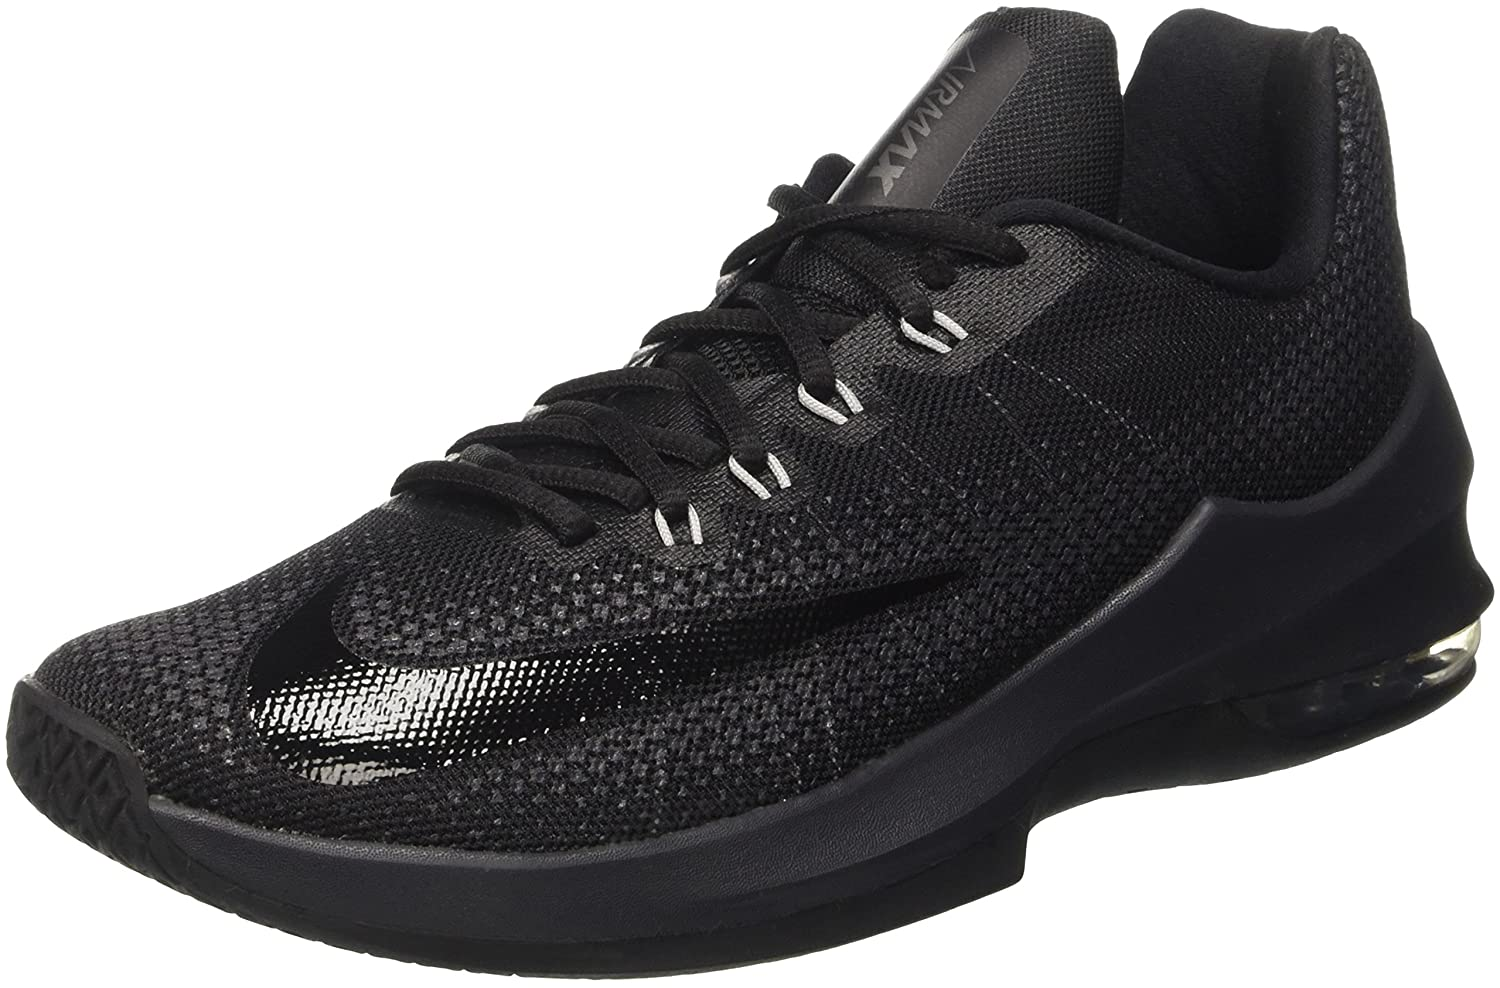 Nike Herren Air Max Infuriate Low Basketballschuhe  44.5 EU|Schwarz (Black/Black/Anthracite/Dark Grey)